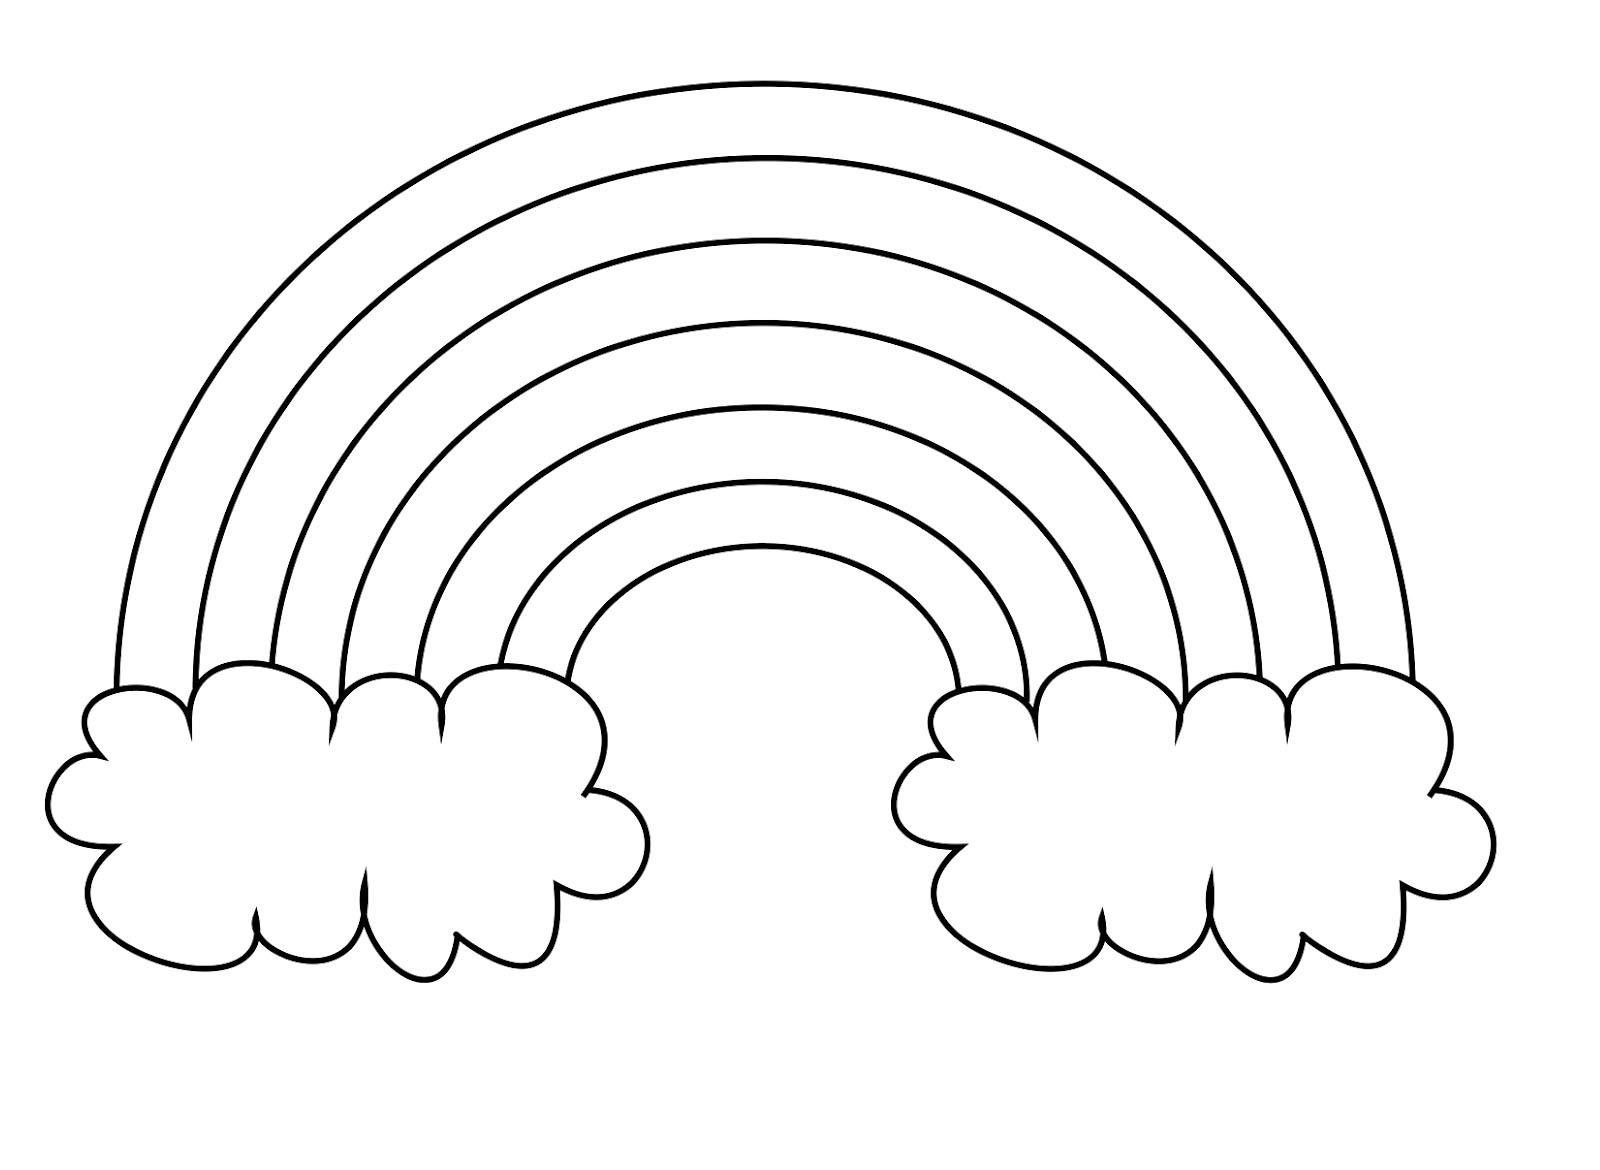 rainbow coloring page rainbows coloring page only coloring pages coloring rainbow page